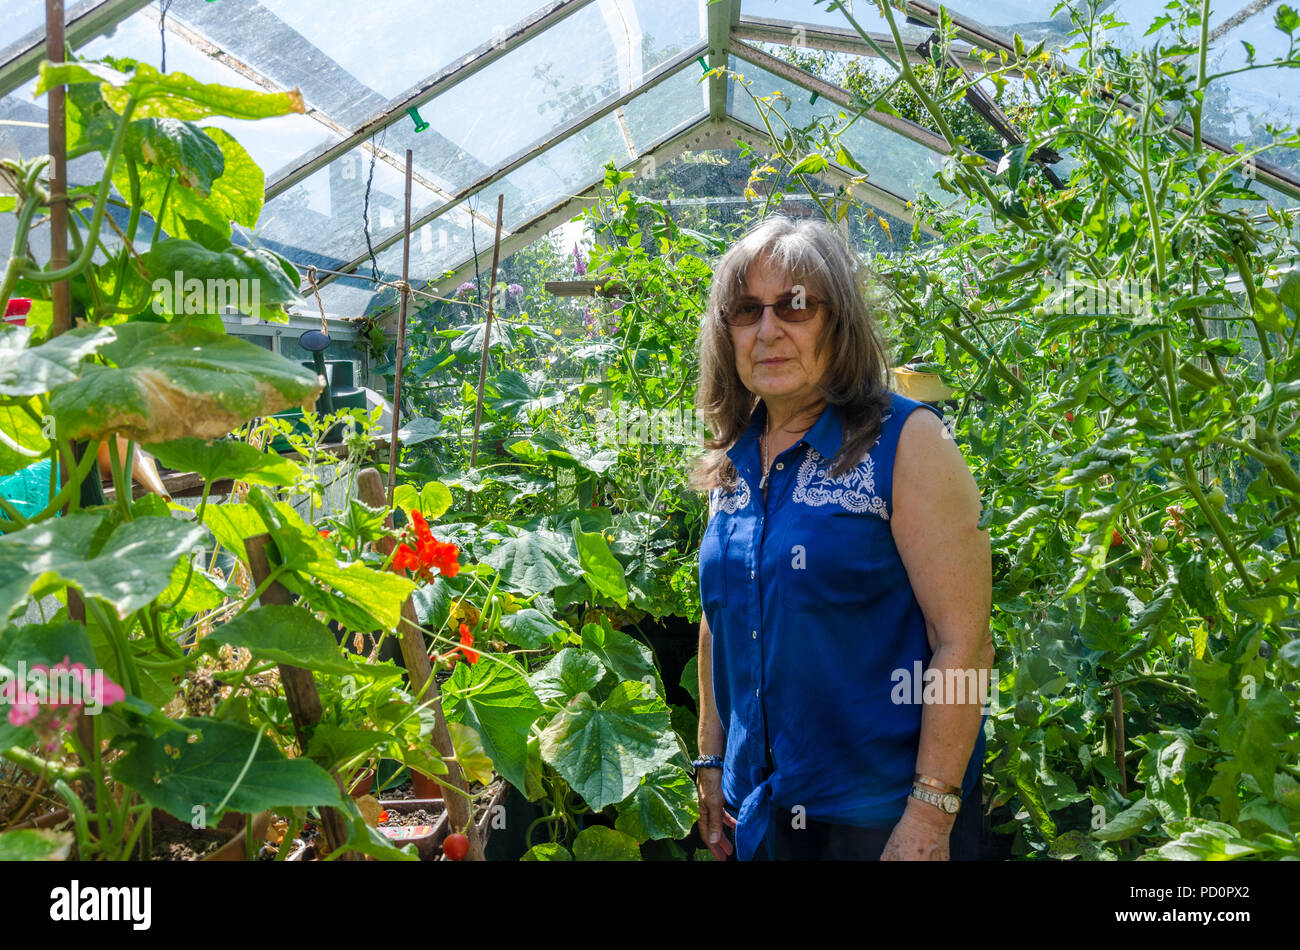 a-lady-surveys-the-tomato-and-cucumber-plants-that-are-growing-in-her-greenhouse-PD0PX2.jpg